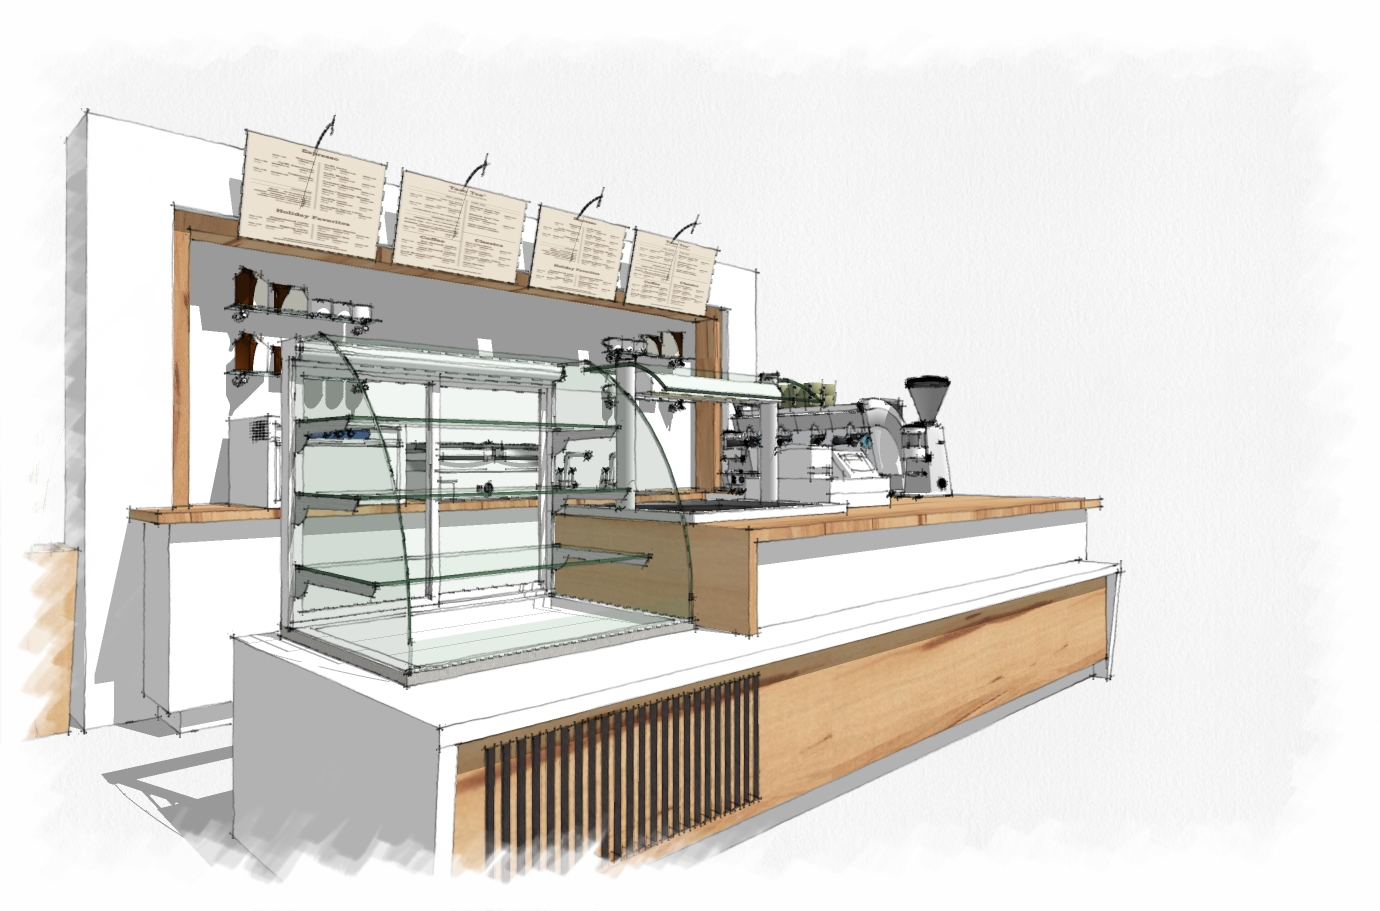 Latest Consultancy Project By Mokaflor And Our Espresso